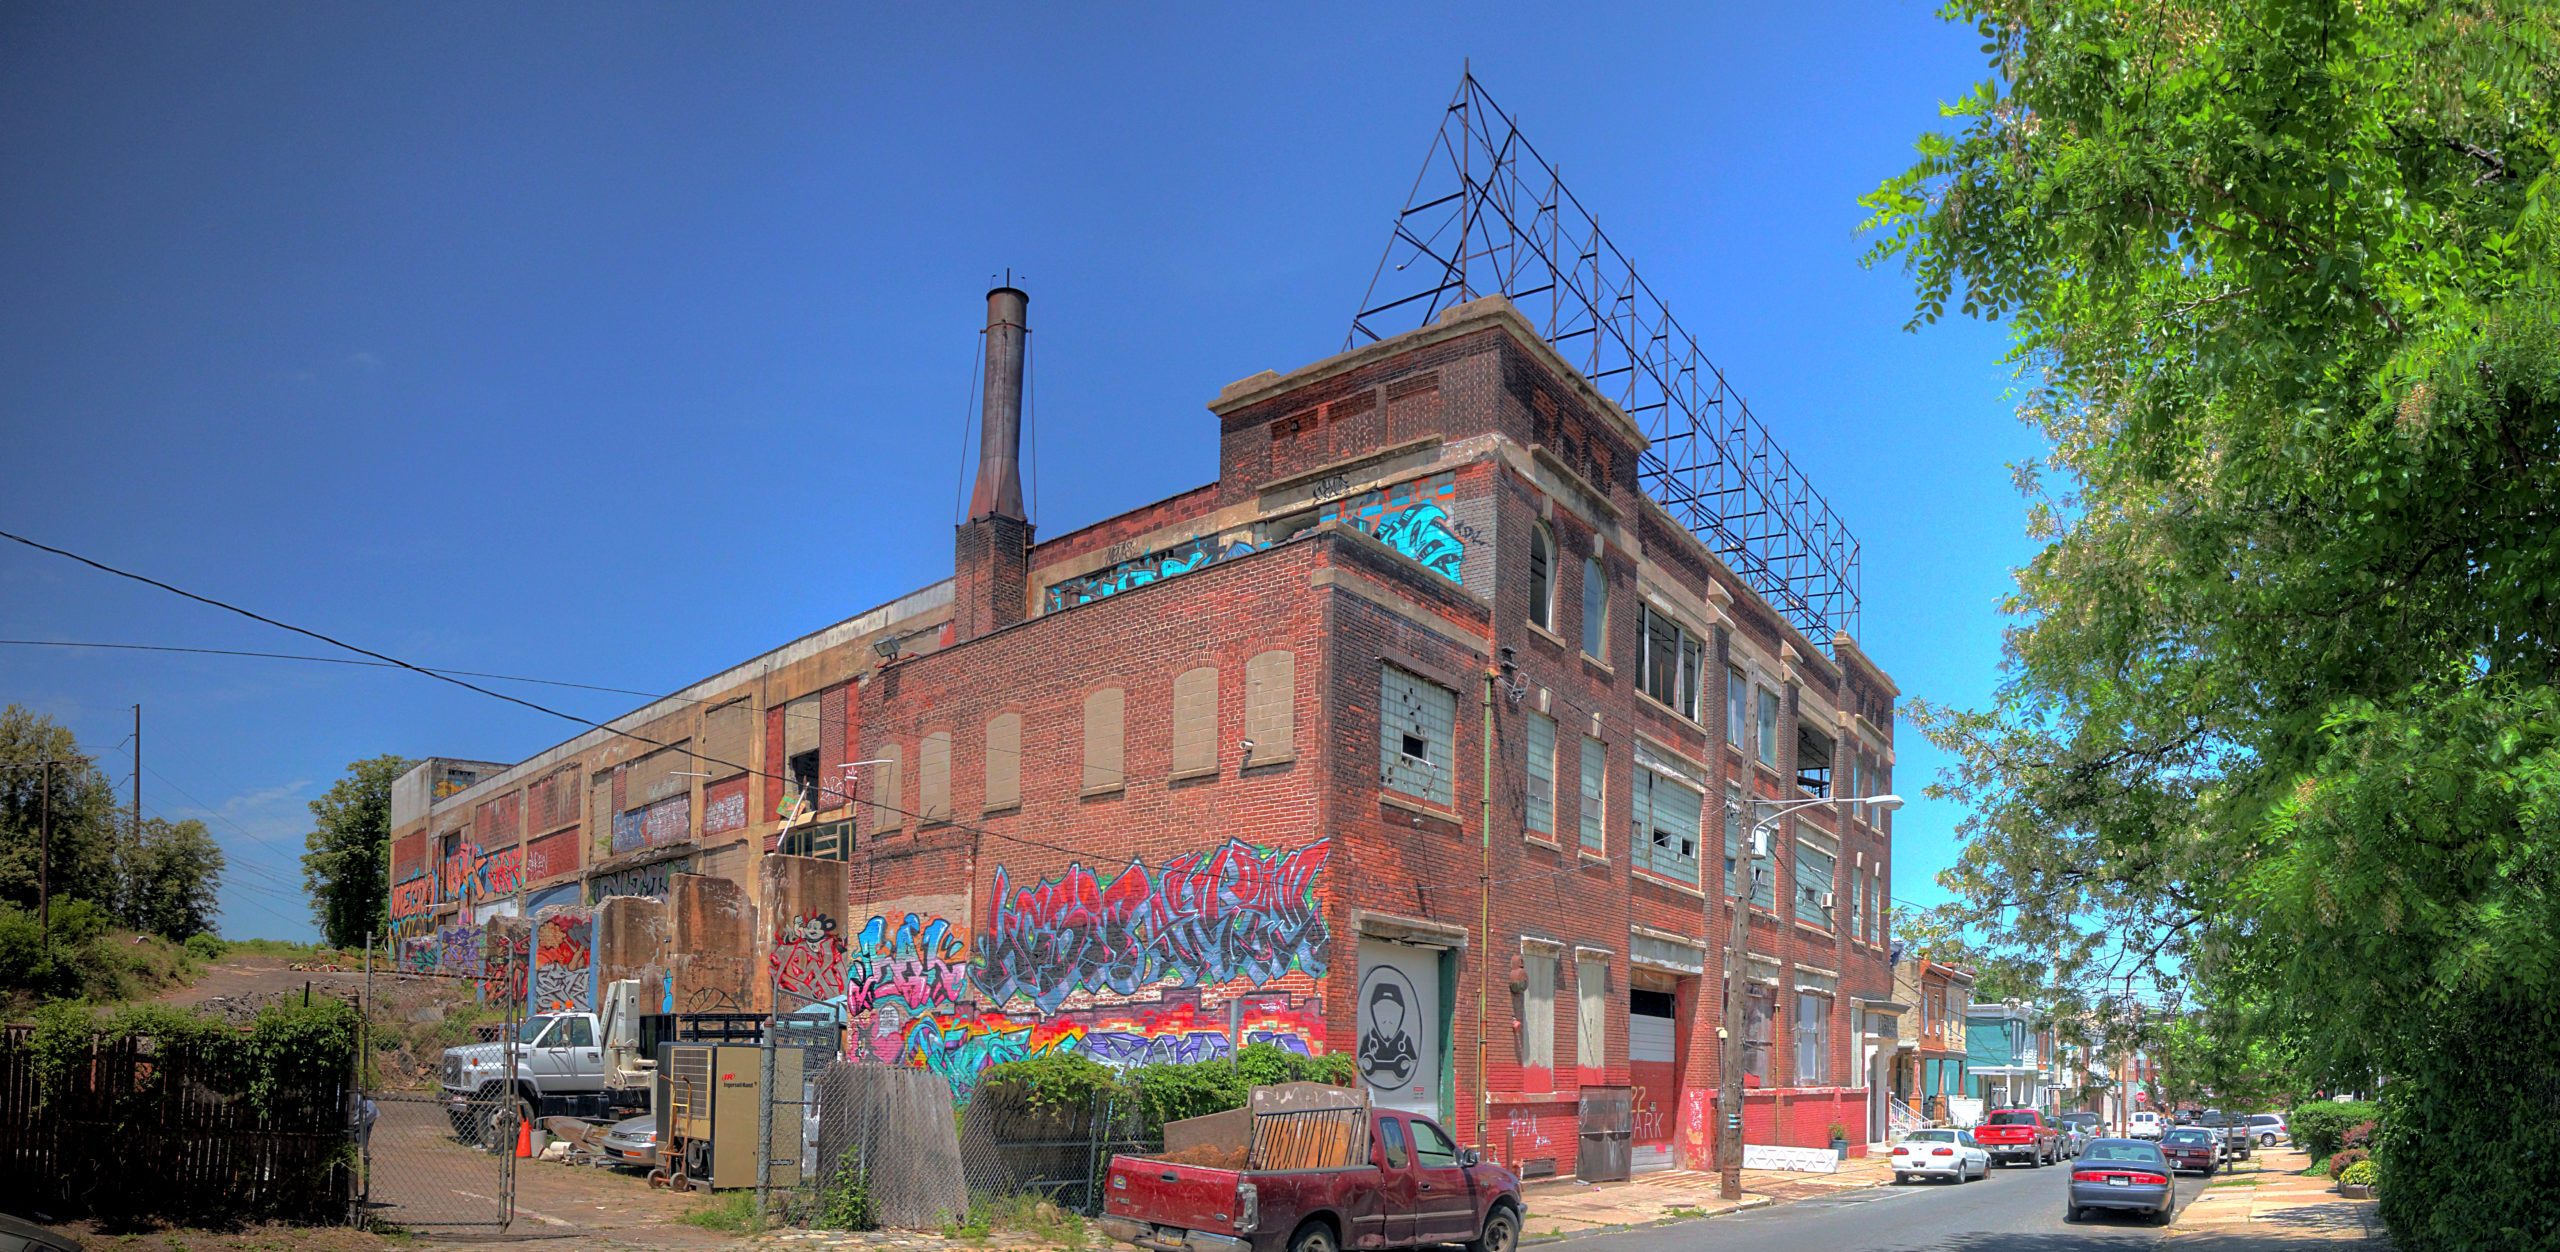 The Recycling Company 3030 N 16th Street Philadelphia, PA Copyright 2019, Bob Bruhin. All rights reserved.